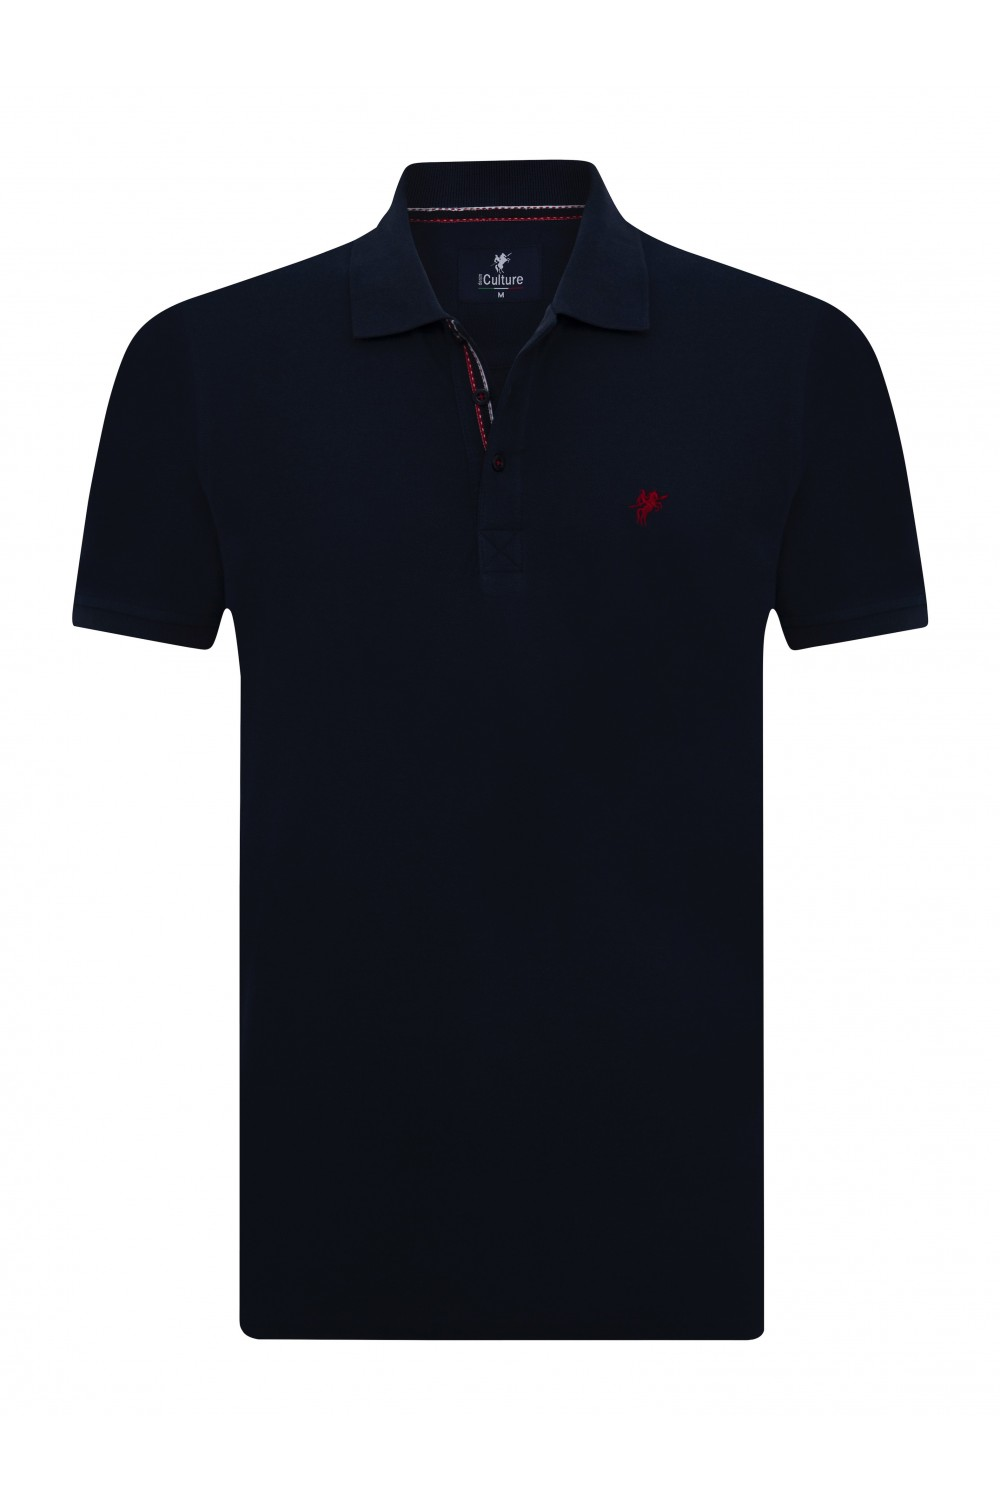 Men's Poloshirt Knitted Navy Cotton